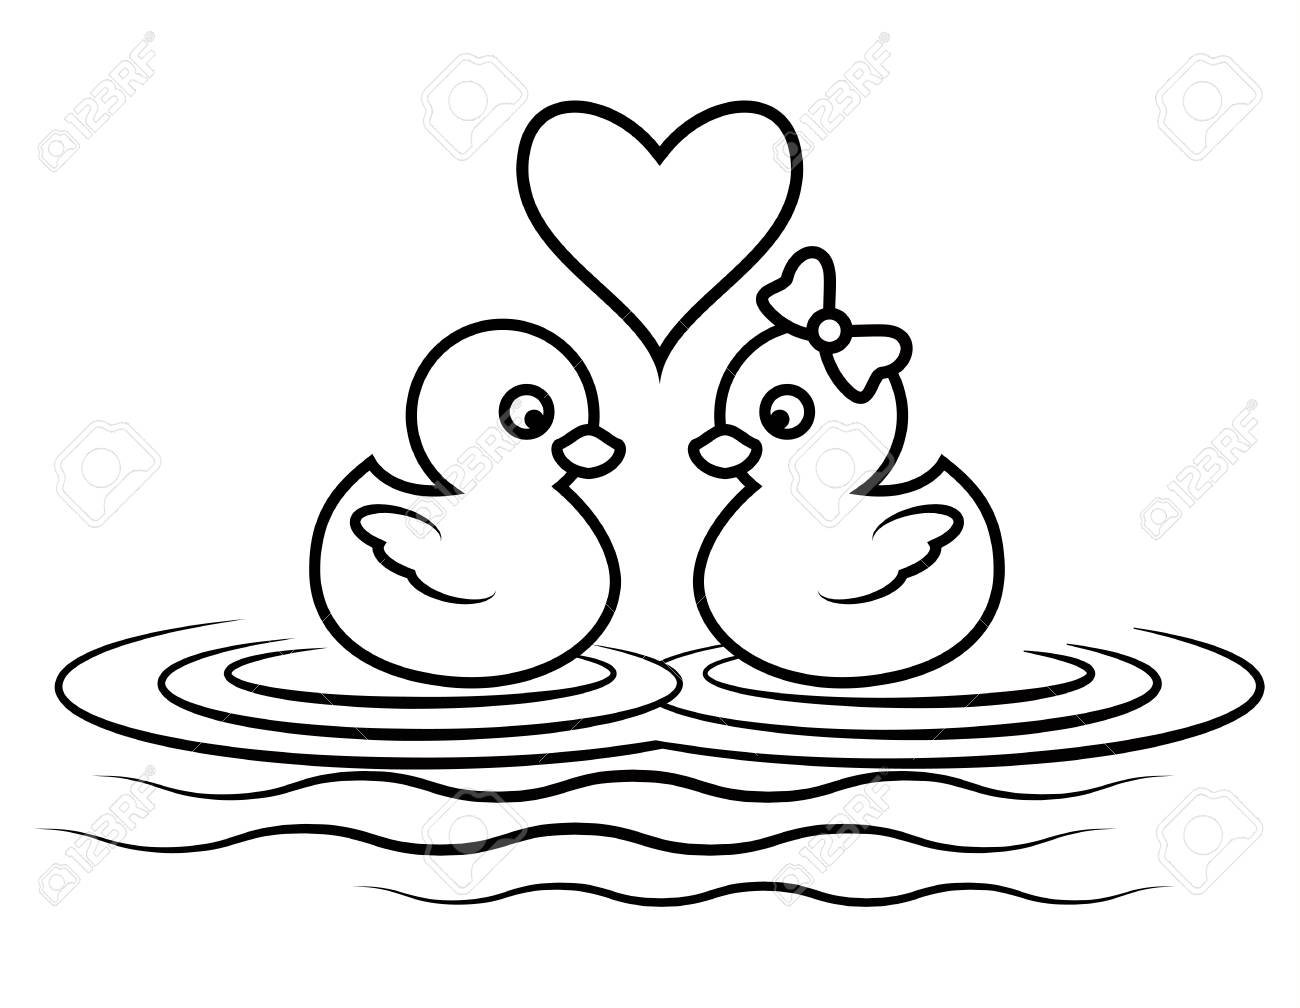 Cartoon duck lover for coloring book page cute couple animal